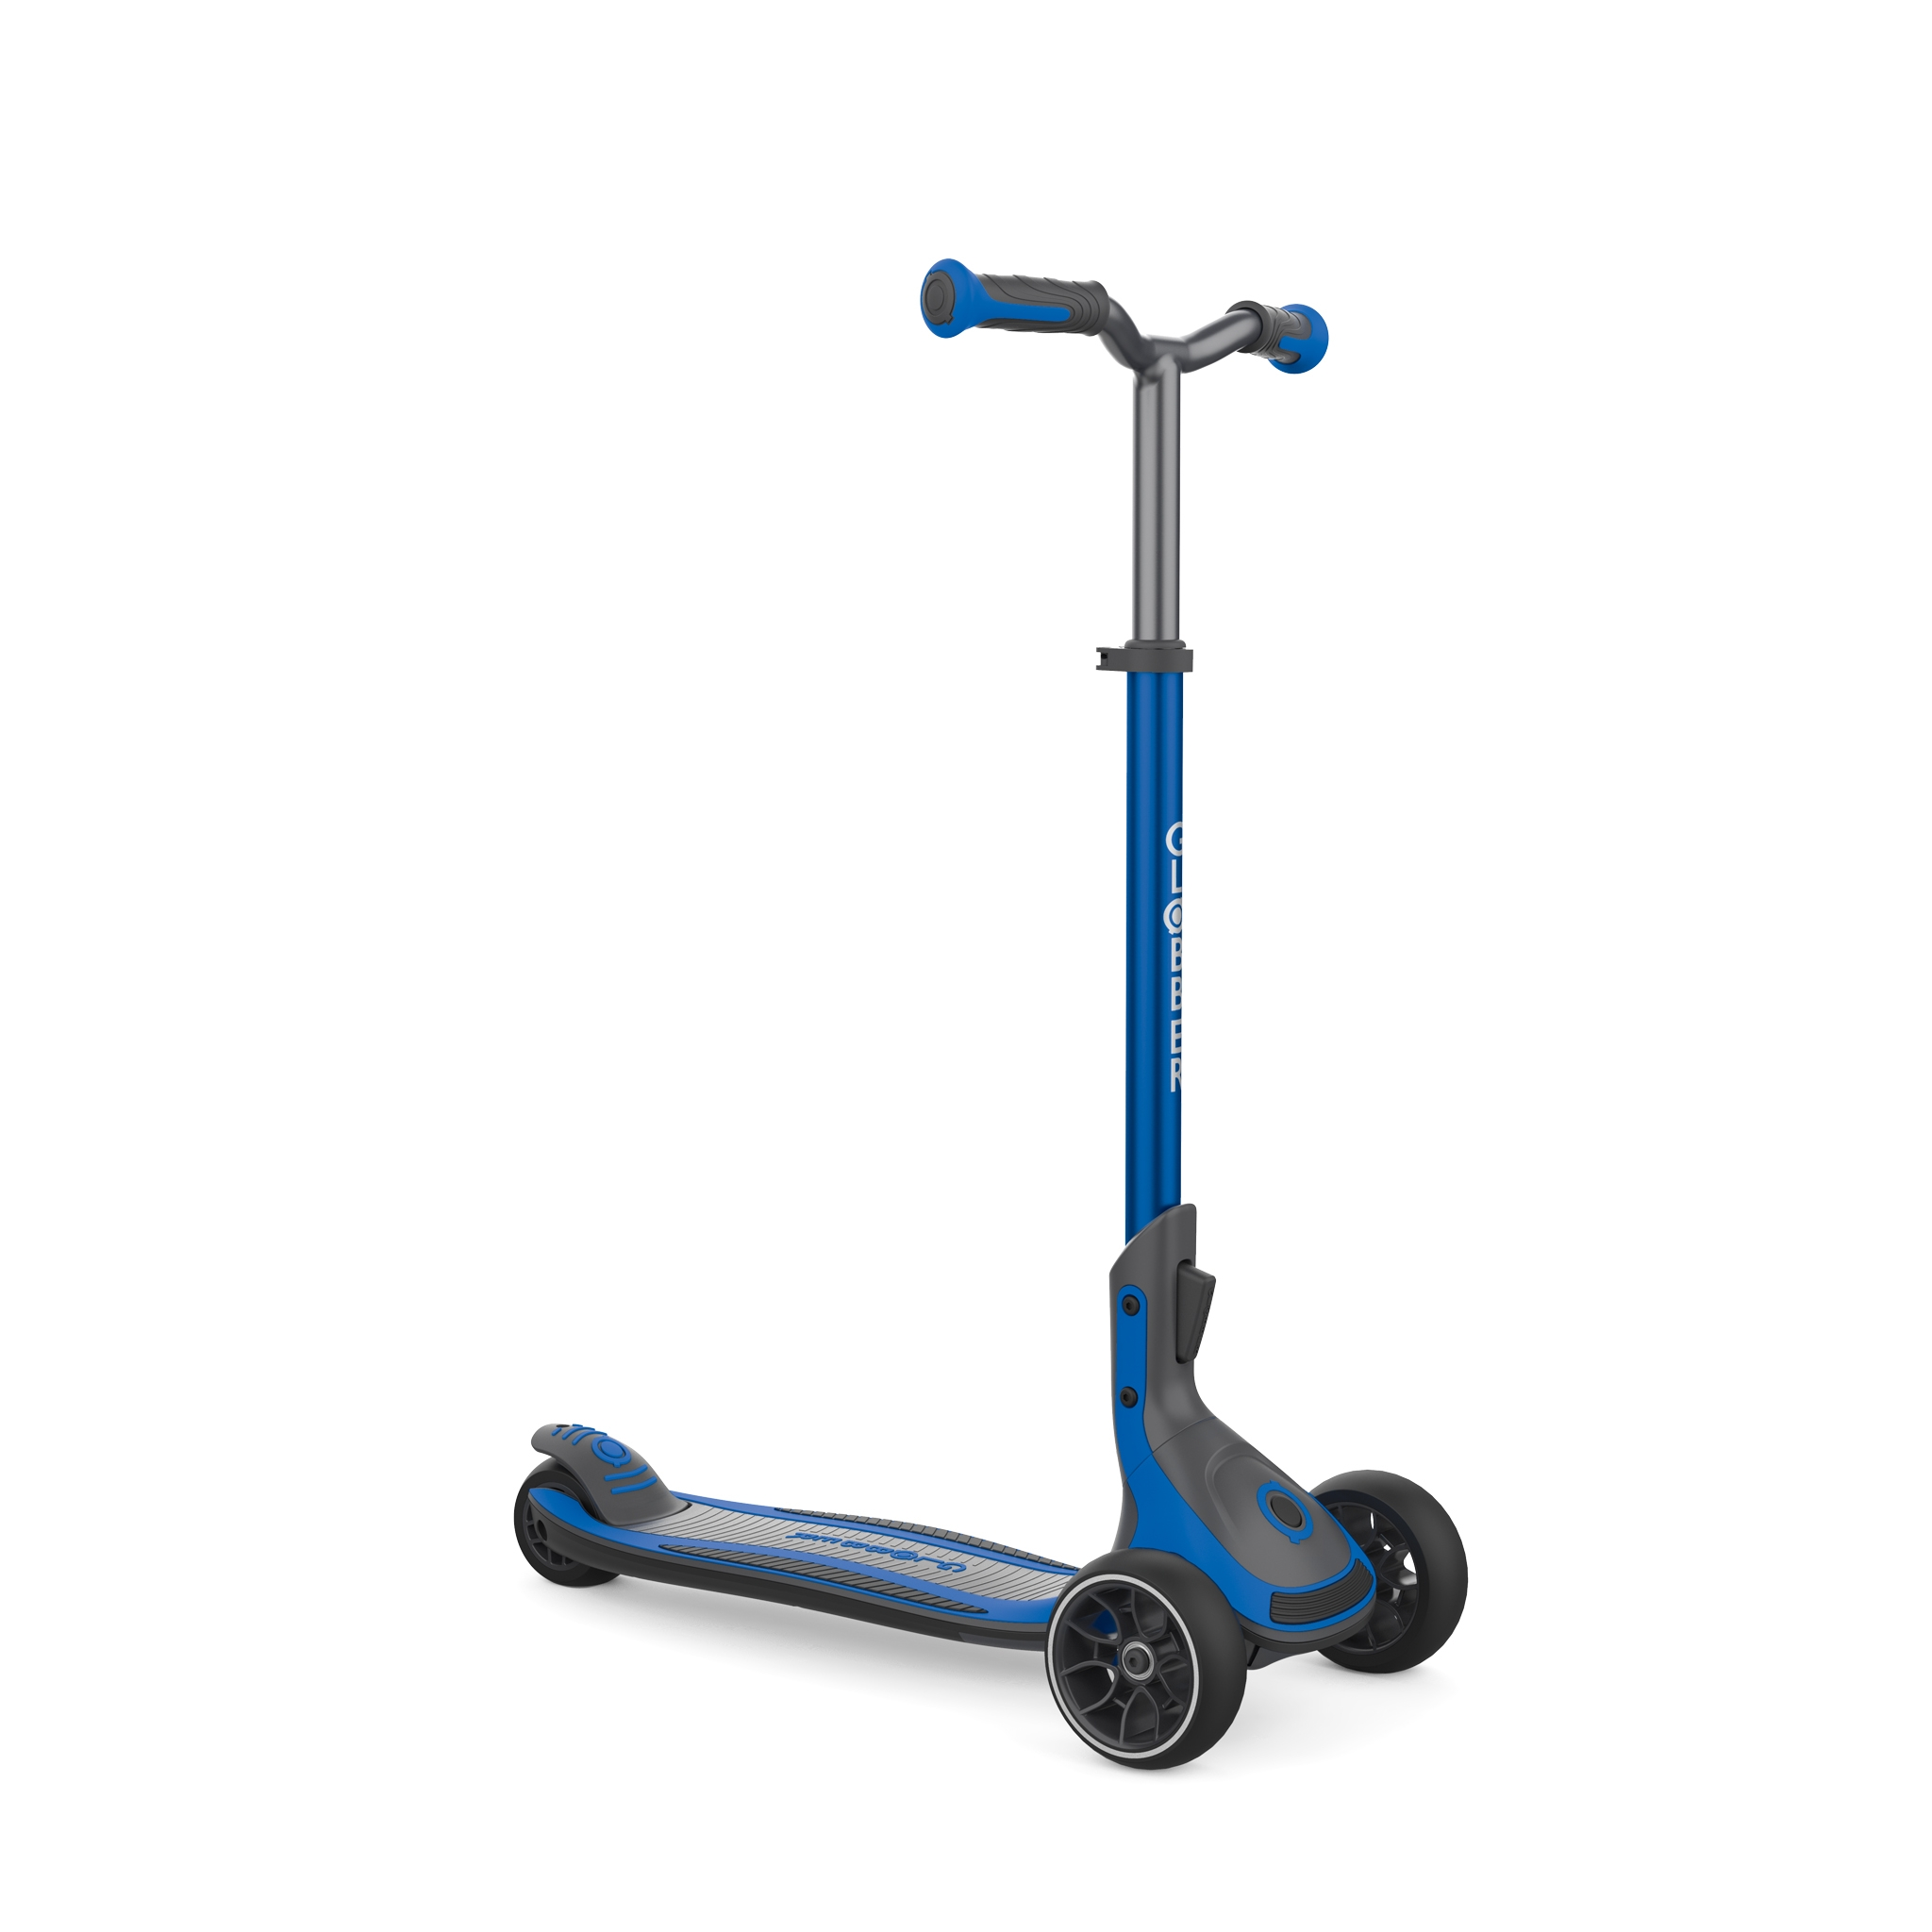 3 wheel foldable scooter for kids, teens and adults - Globber ULTIMUM 0